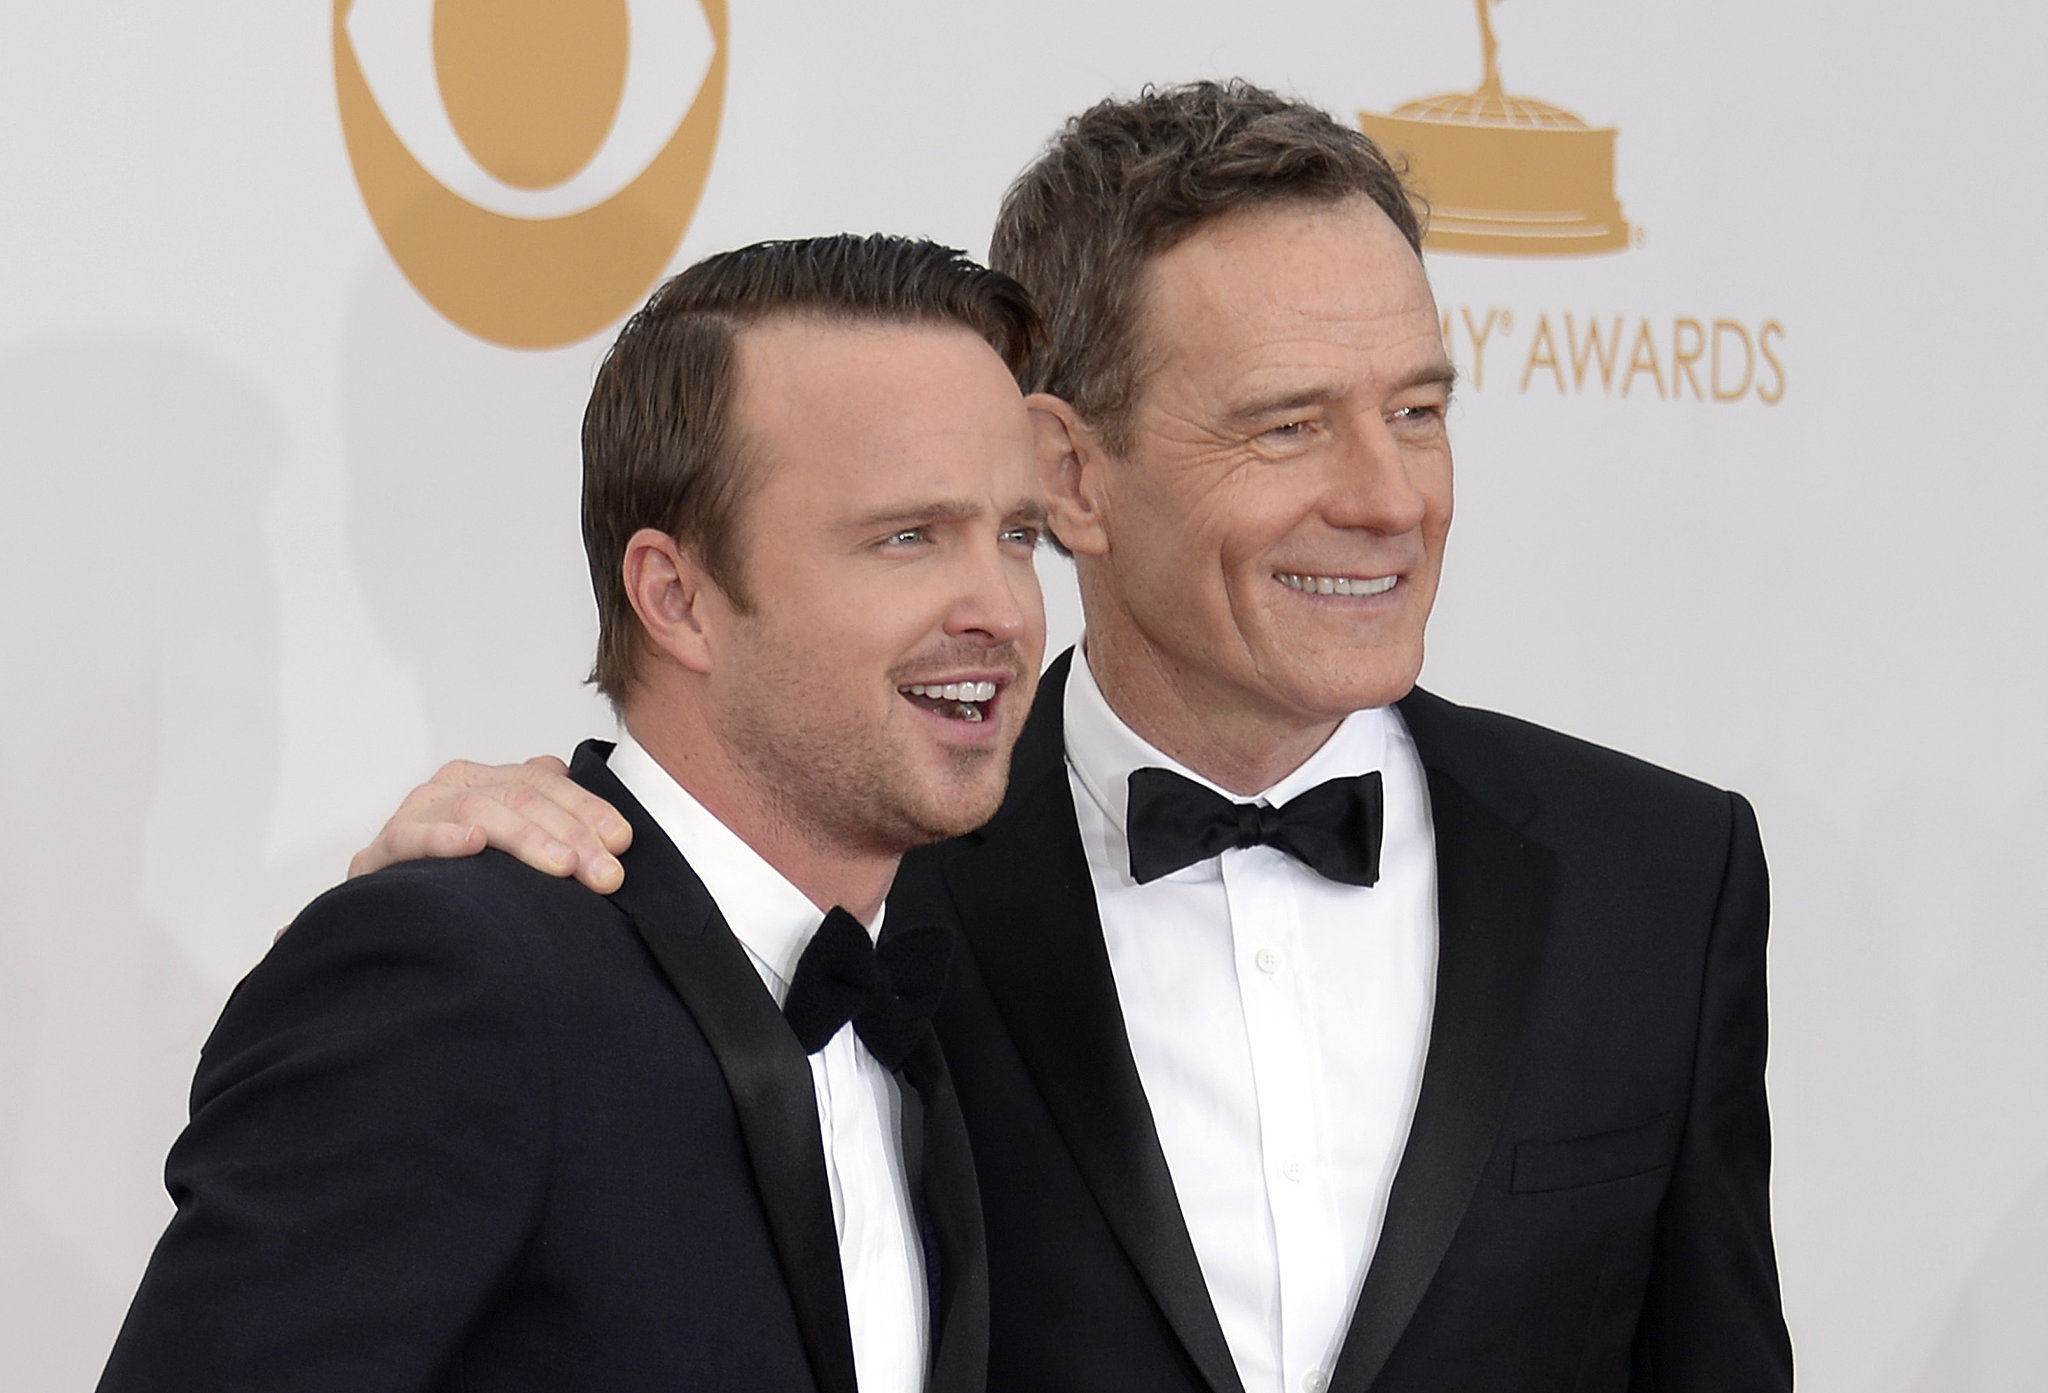 Breaking Bad duo Aaron Paul and Bryan Cranston posed on the red carpet together.